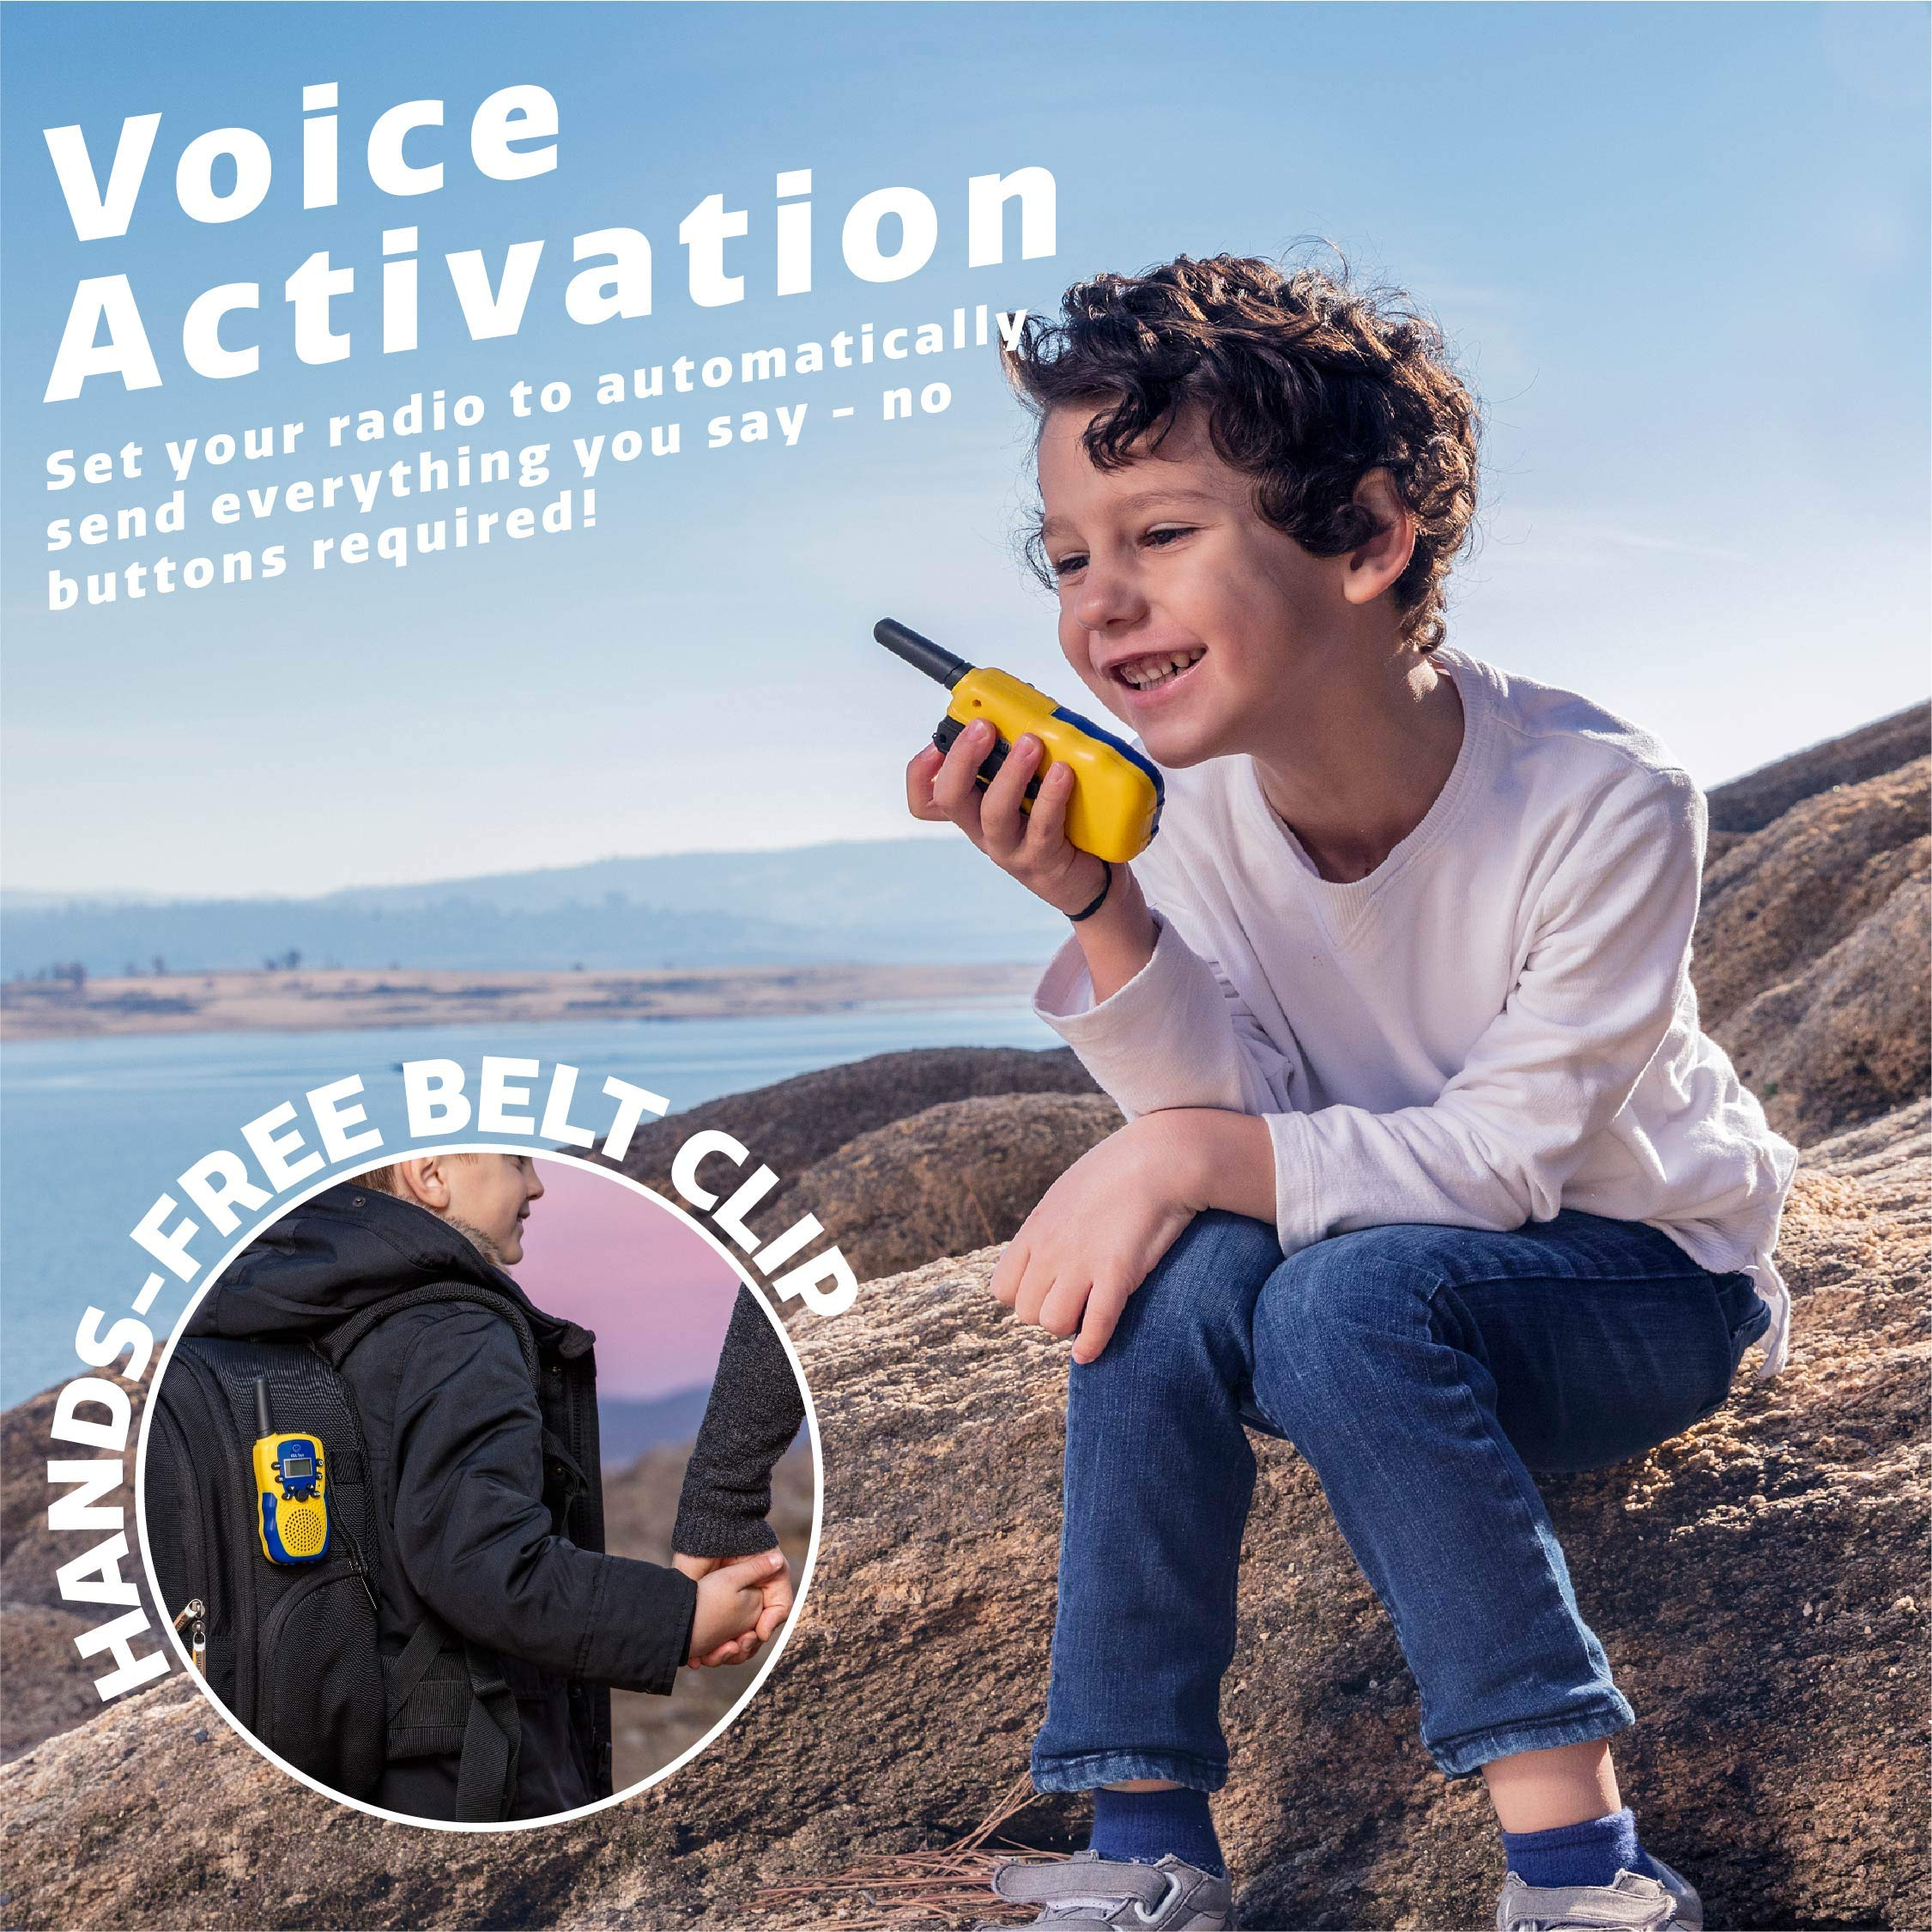 USA Toyz Kids Walkie Talkies with Binoculars - Vox Box Voice Activated Long Range Walkie Talkie Set w/ Binoculars for Kids, Outdoor Toys for Boys or Girls by USA Toyz (Image #3)